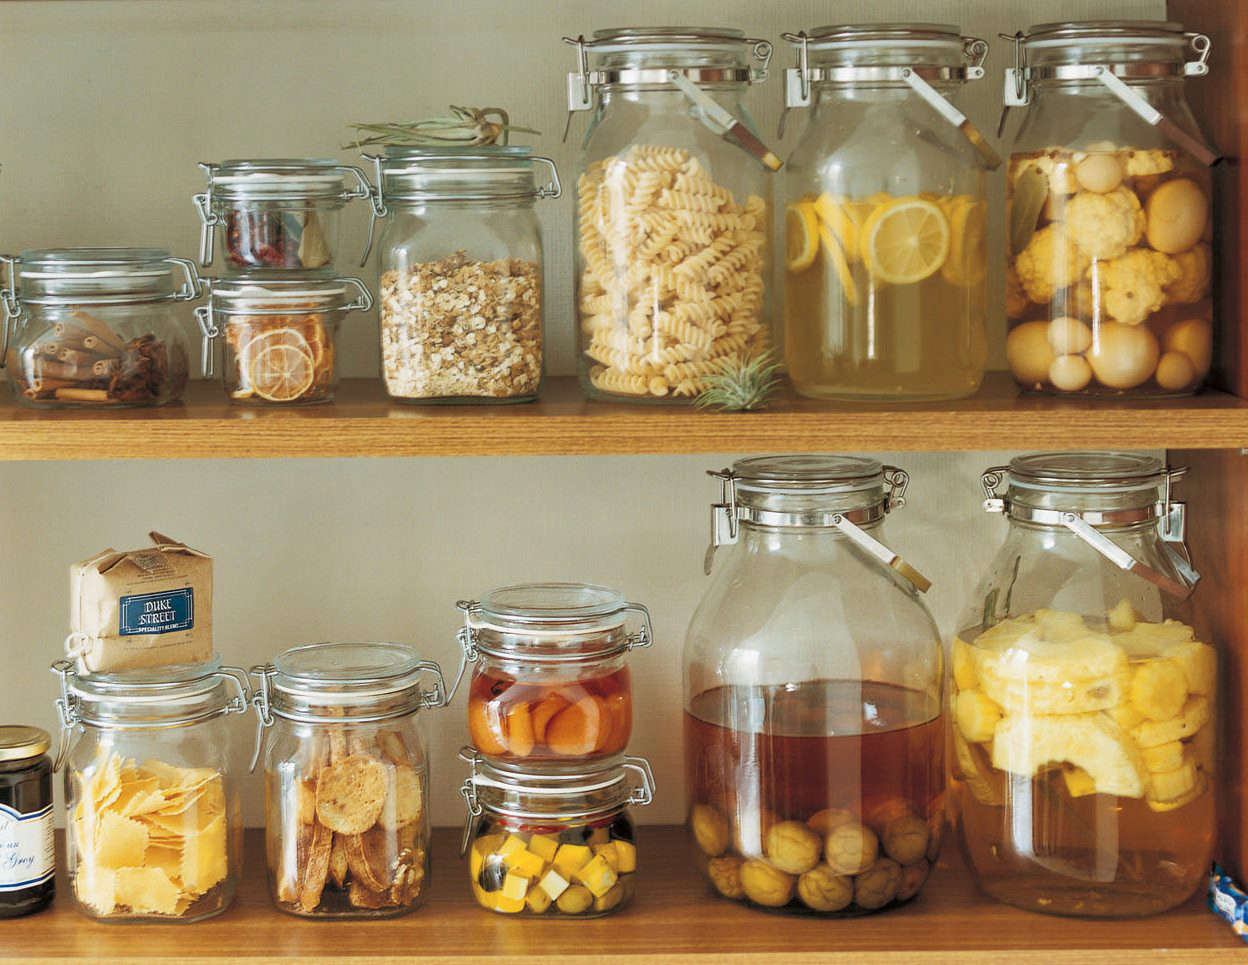 Soda Glass Airtight Jars From Muji Are Made In Italy; Prices Start At $6 For